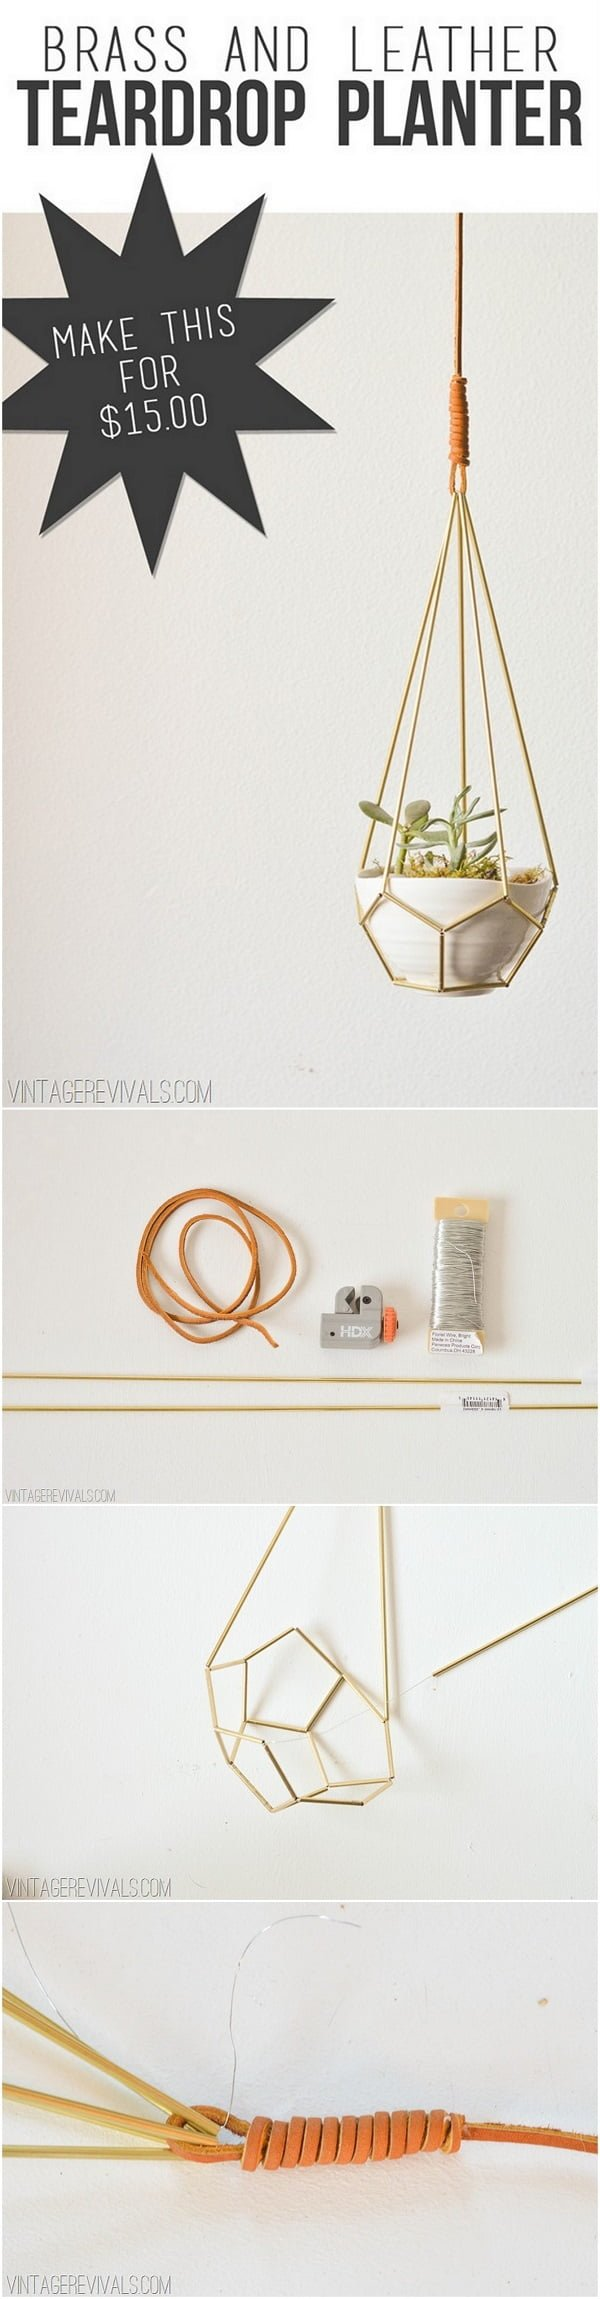 Check out this easy idea on how to make a #DIY teardrop hanging planter #Scandinavian style #homedecor #crafts #project